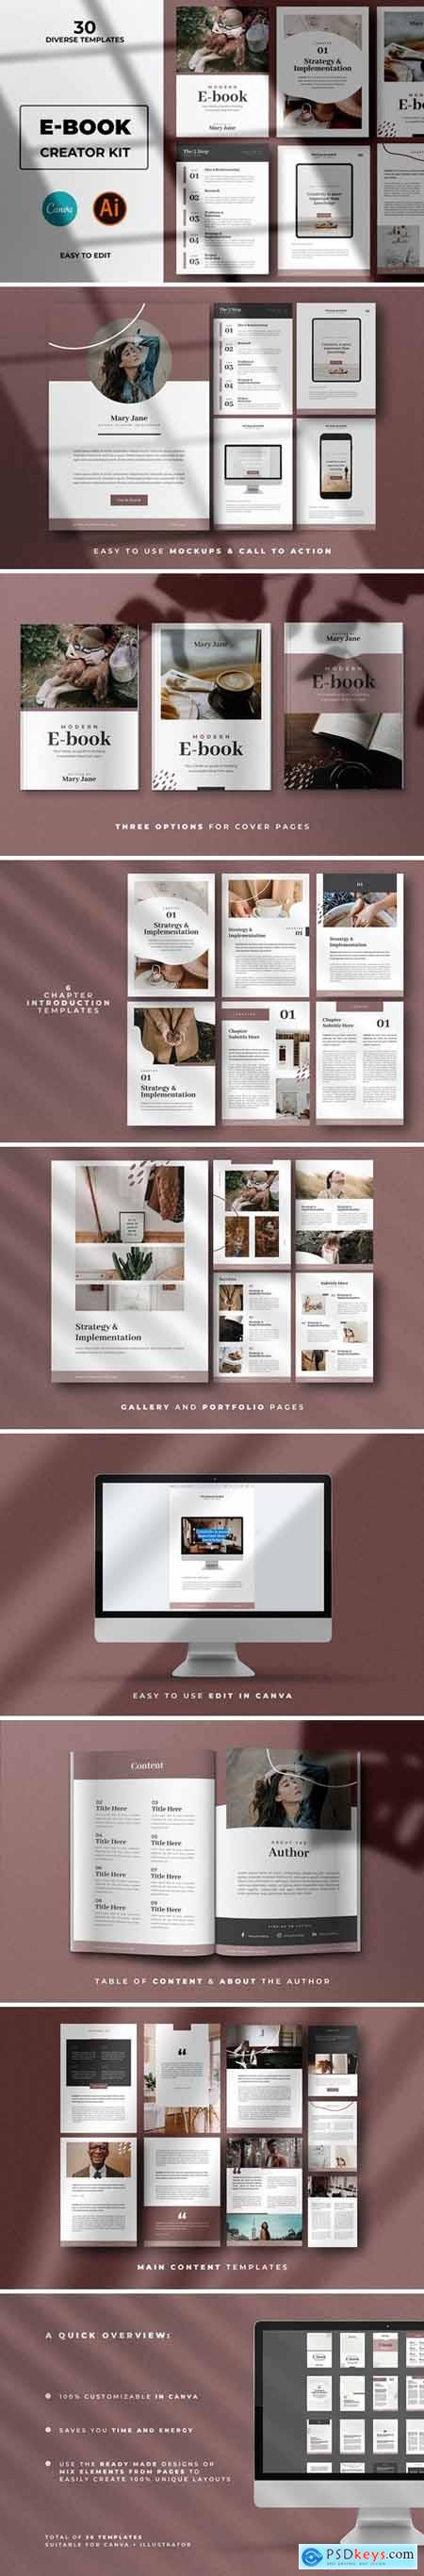 Modern Abstract Ebook Templates For Canva